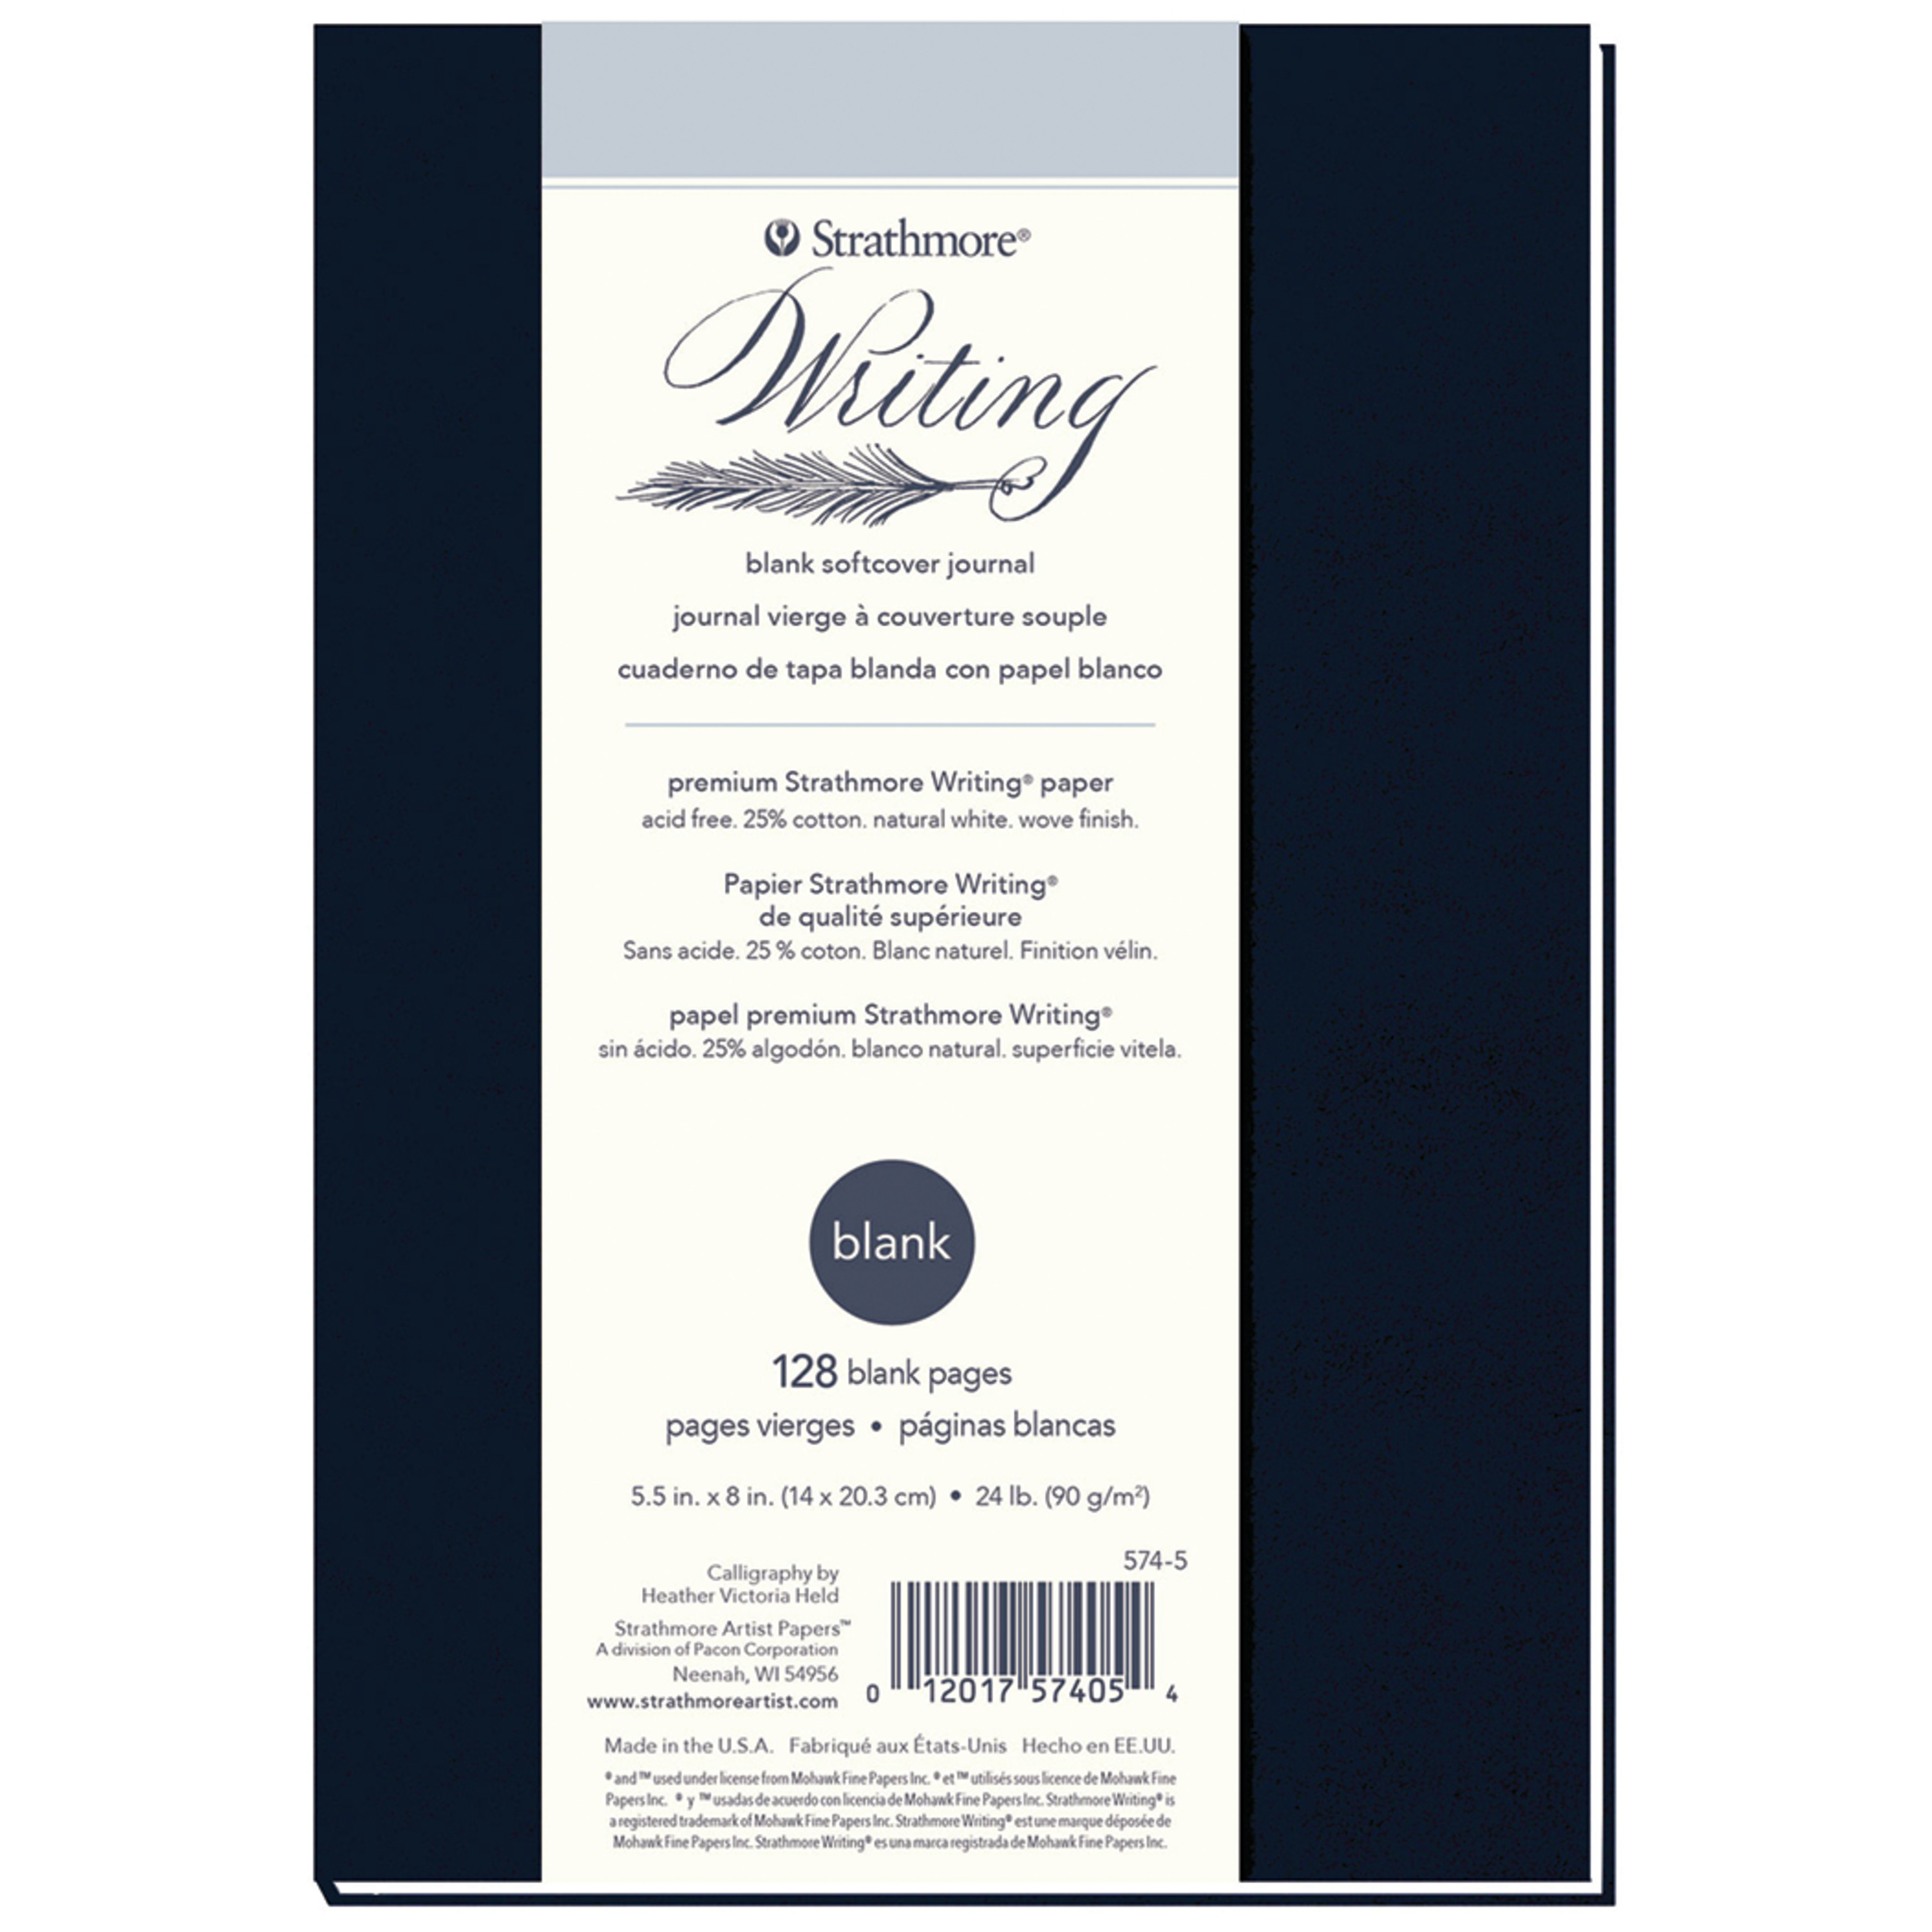 Strathmore Writing Journal, soft cover, 5.5in x 8in, Blank